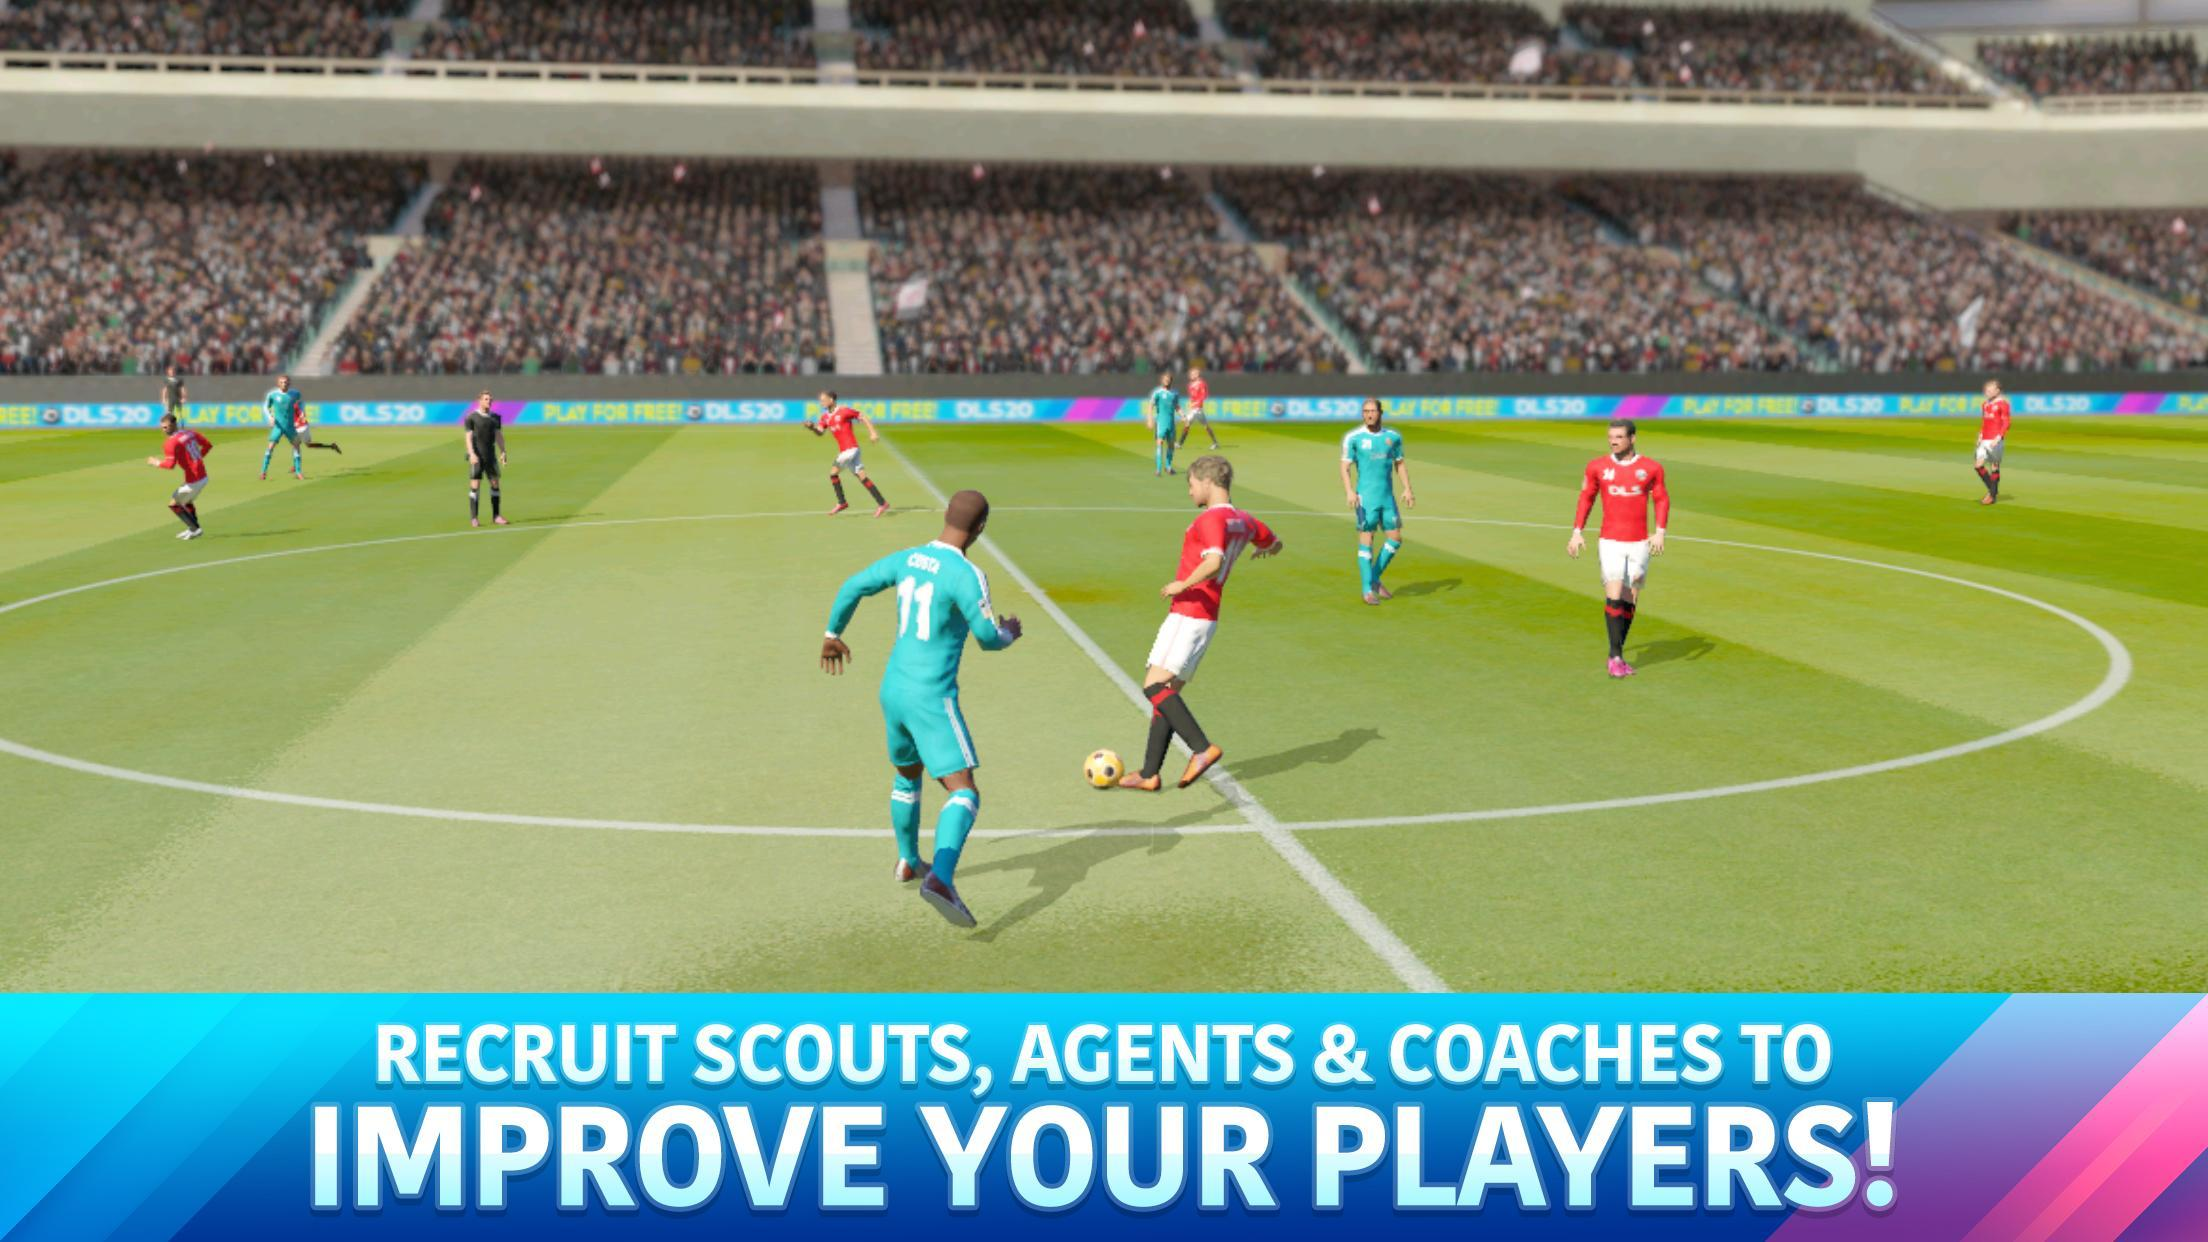 Dream League Soccer 2020 for Android   APK Download 2208x1242